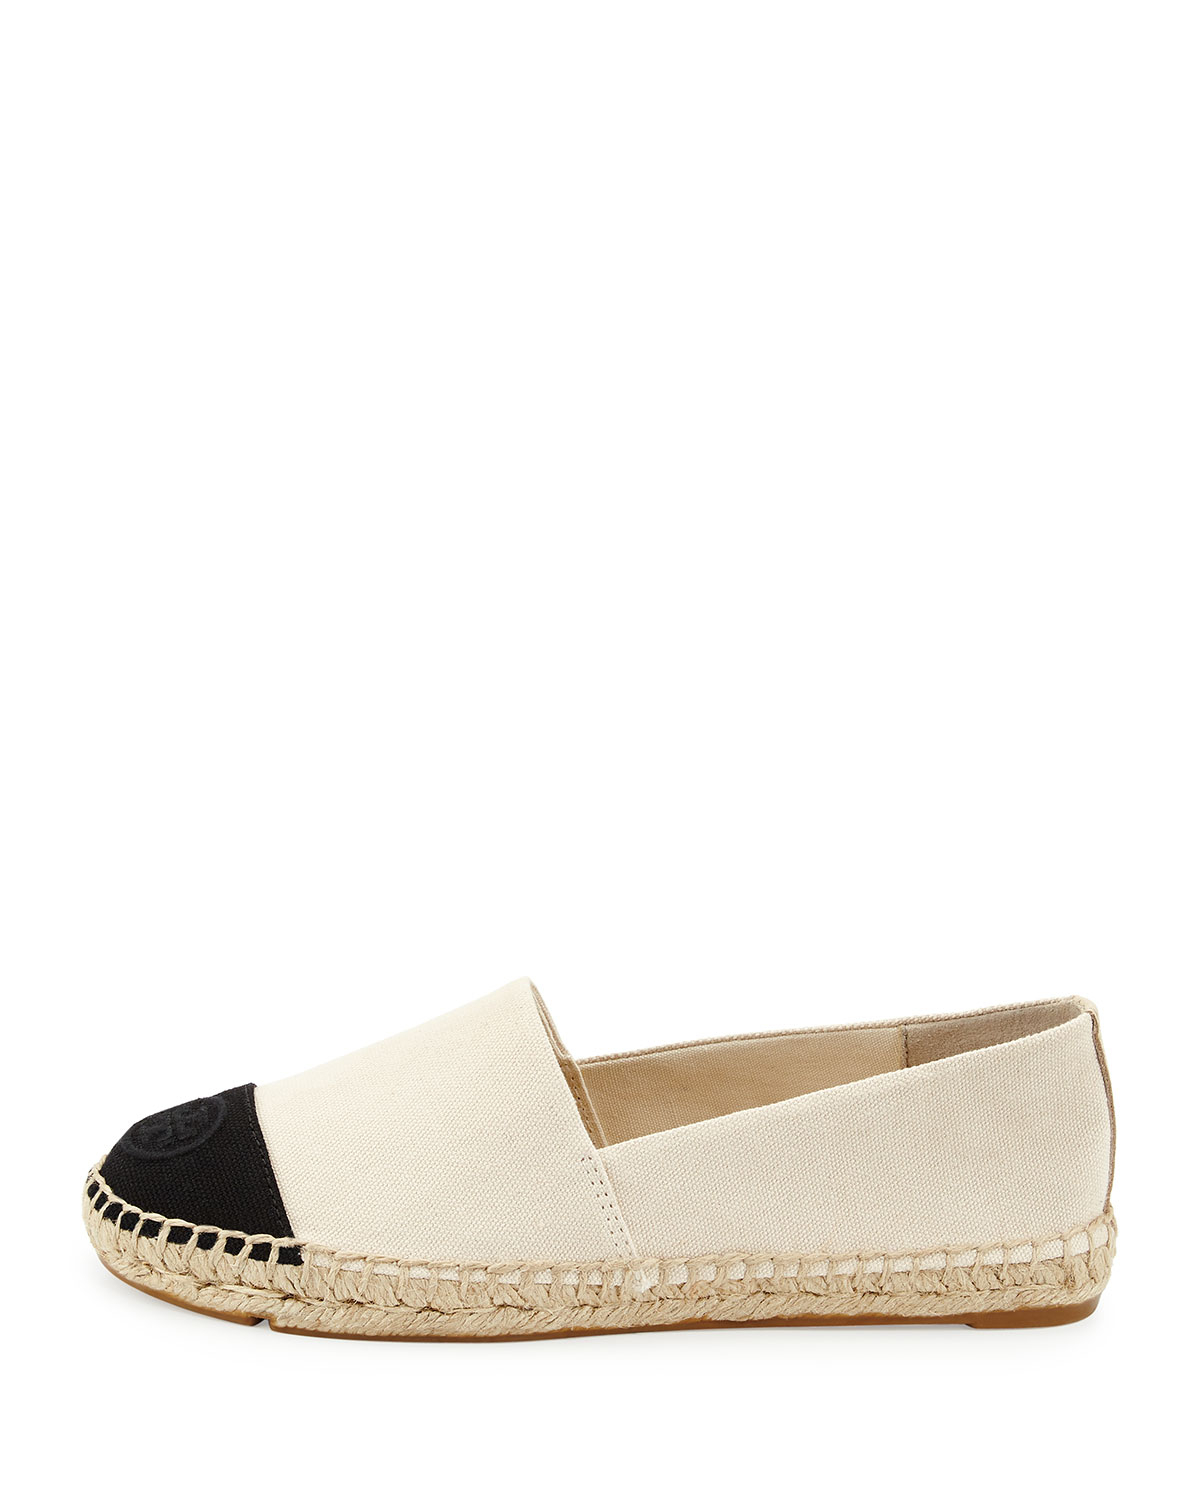 56793dfc8479 Lyst - Tory Burch Canvas Colorblock Espadrille Flat in White